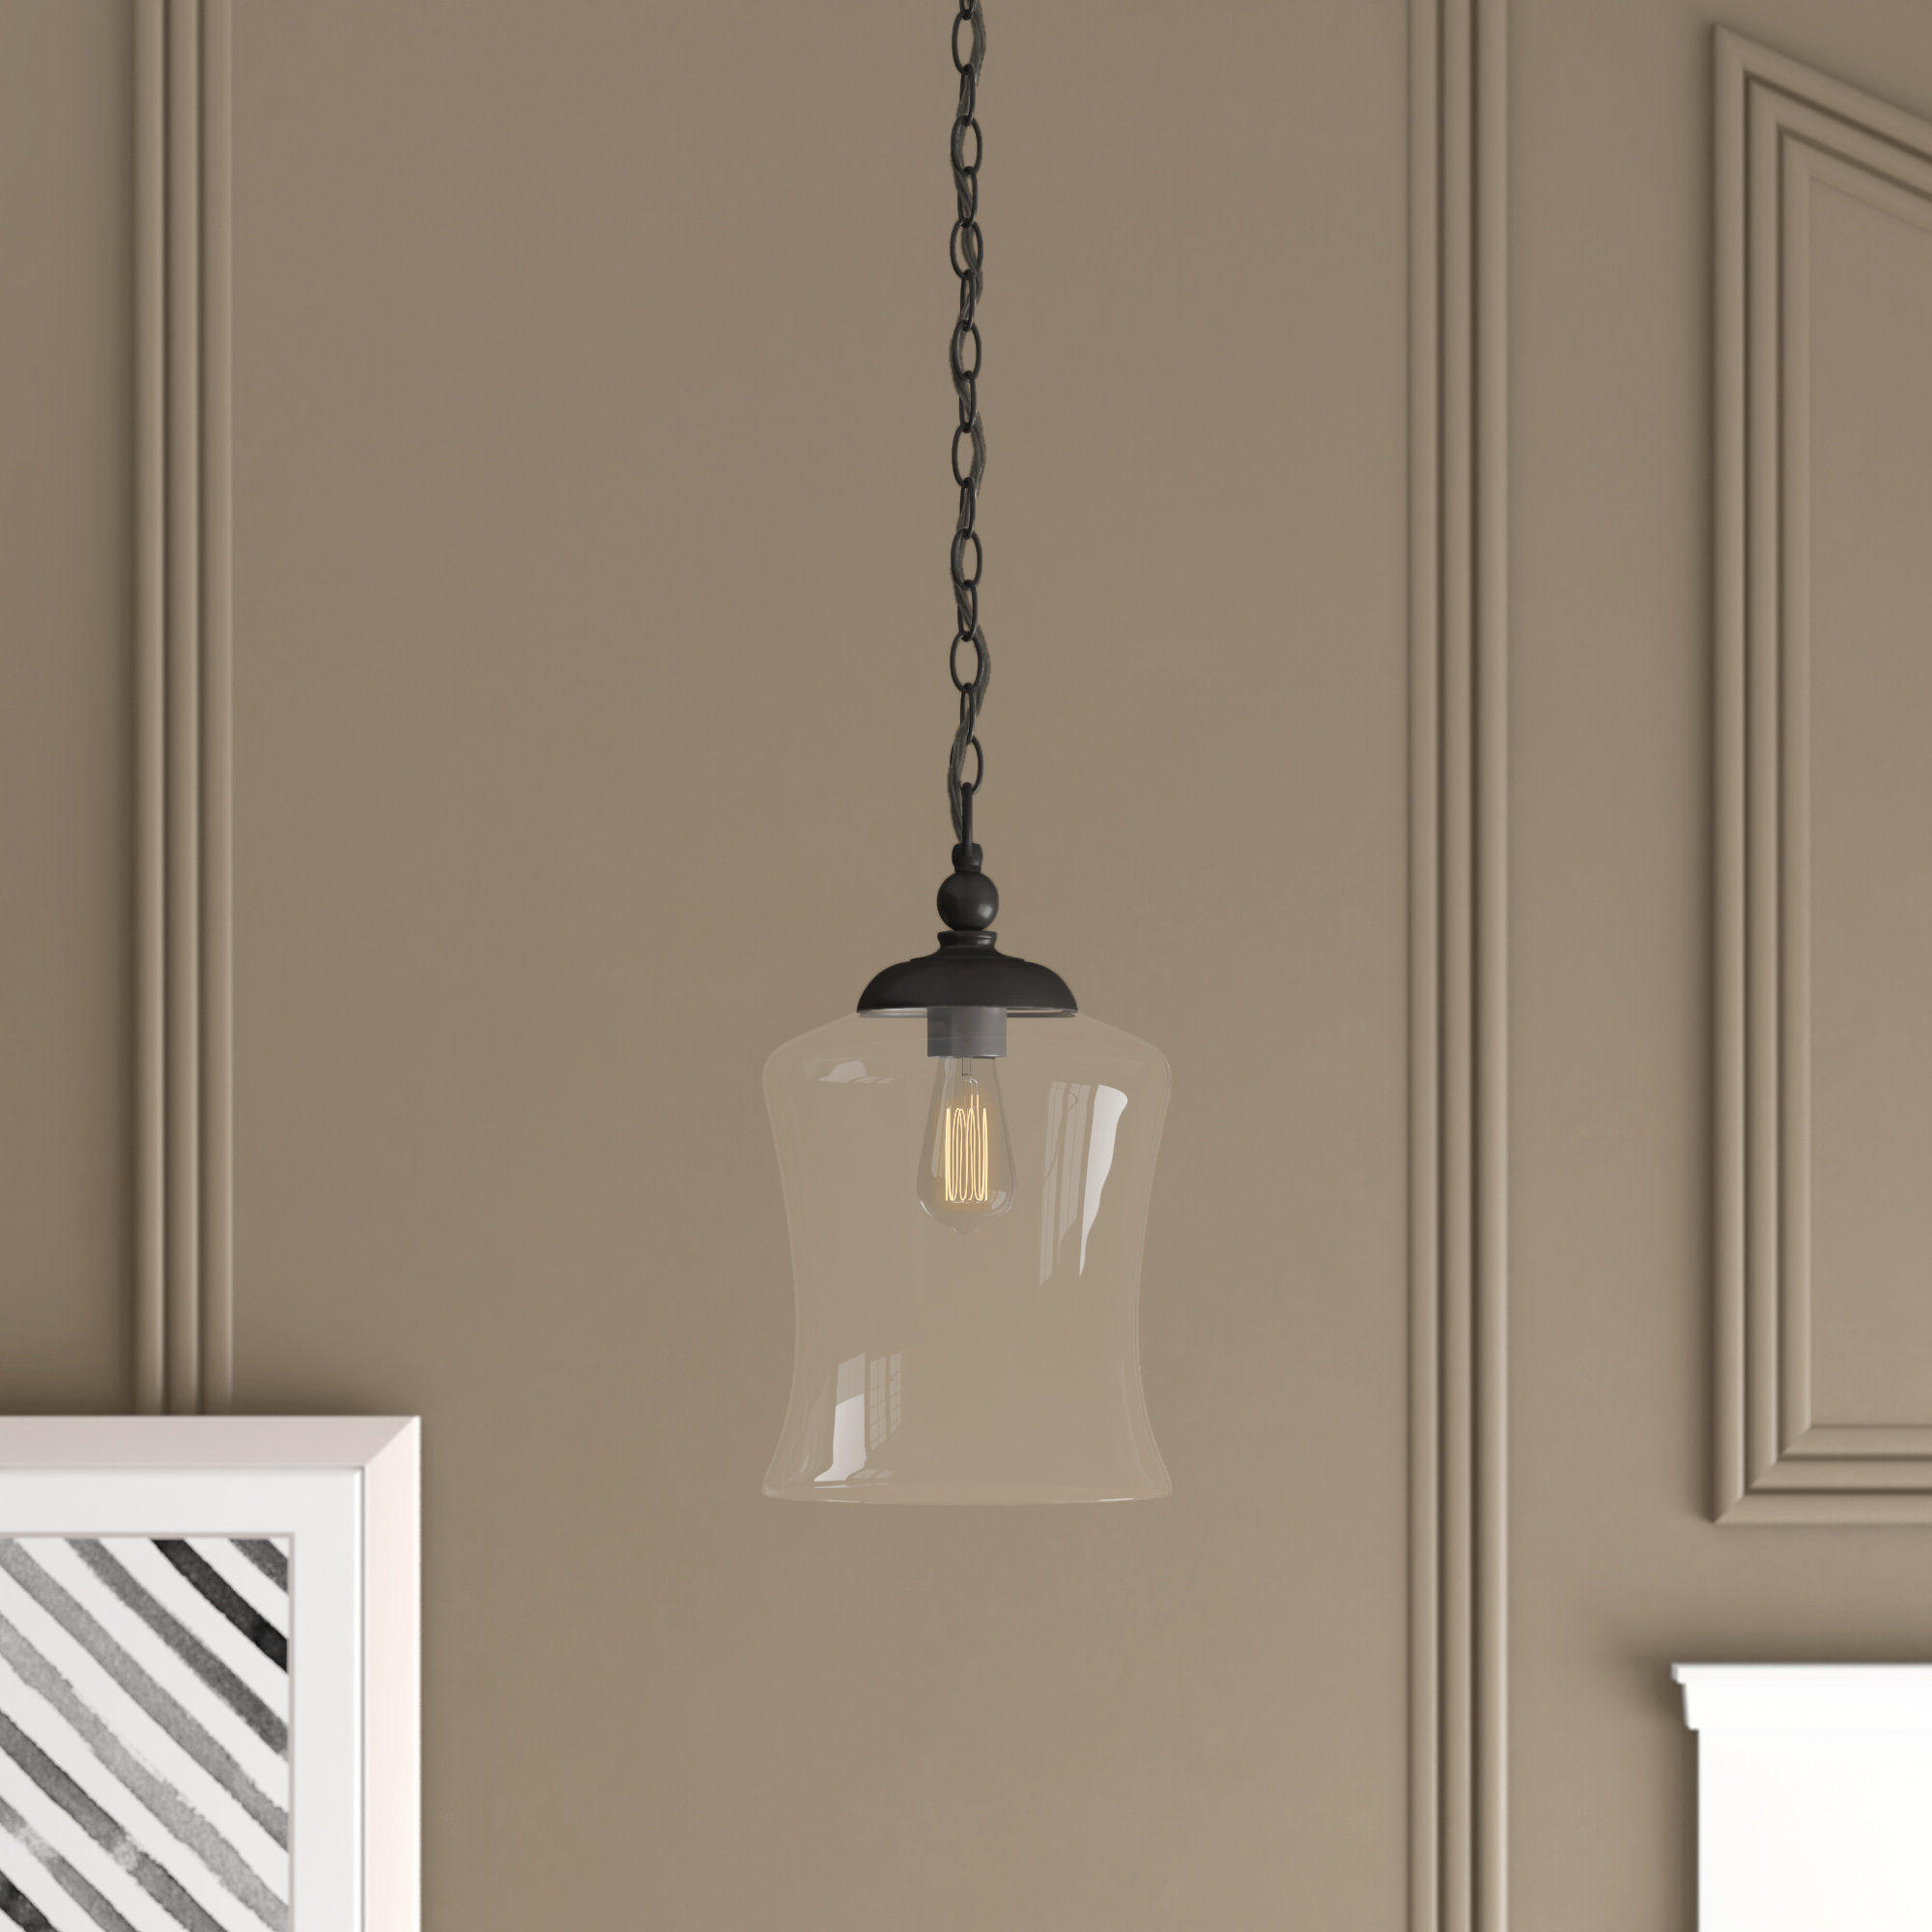 Wentzville 1 Light Single Bell Pendant Intended For Widely Used Moyer 1 Light Single Cylinder Pendants (View 24 of 25)